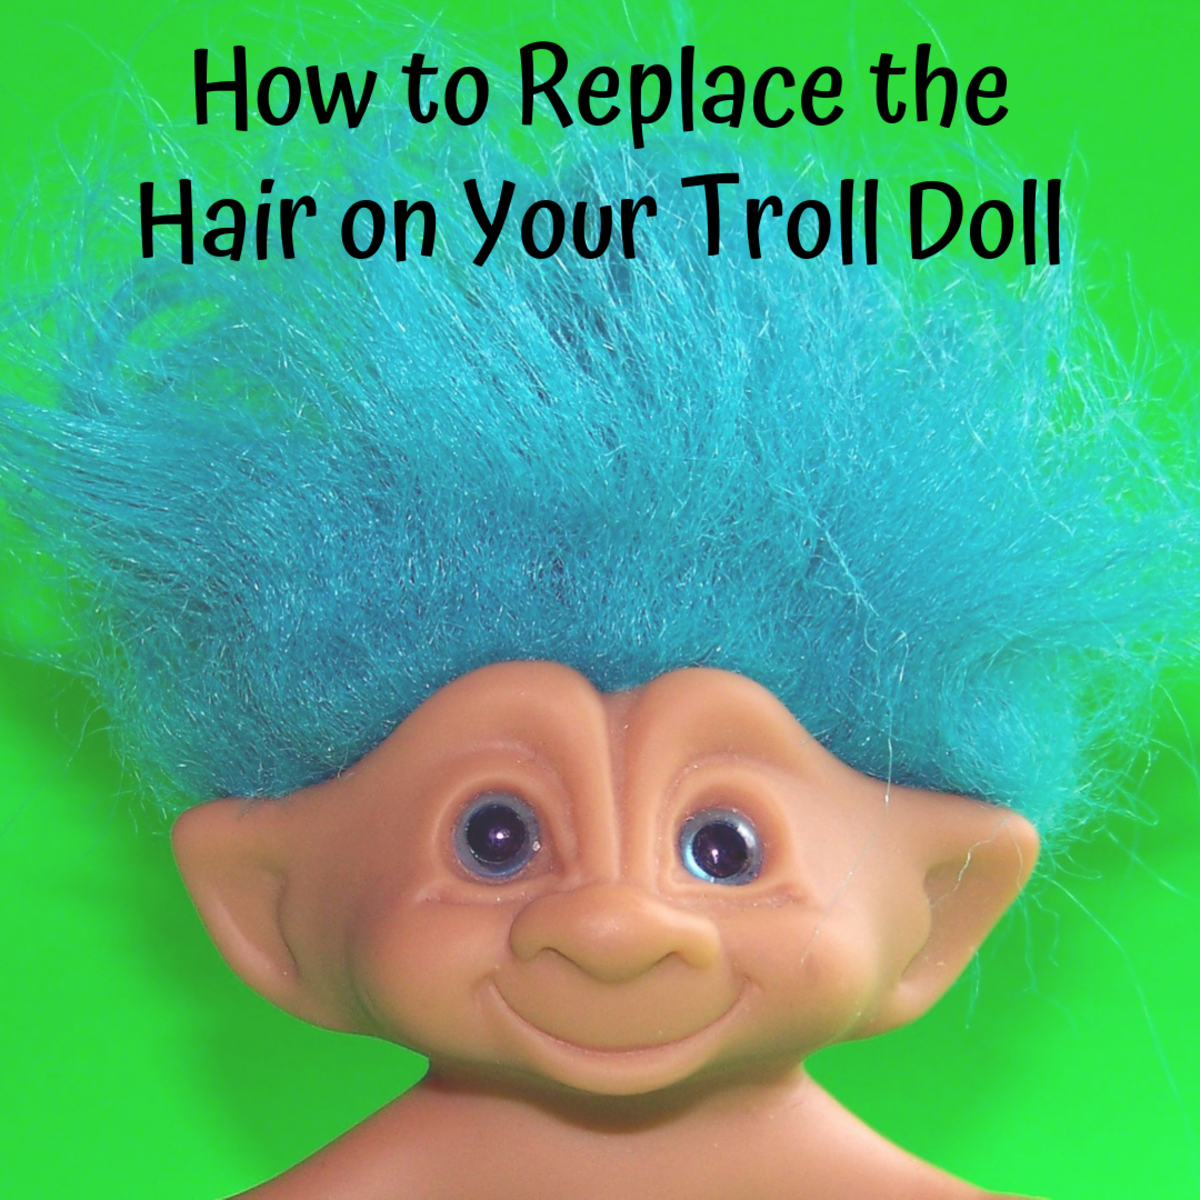 This article will show you how to replace the hair on a troll doll.